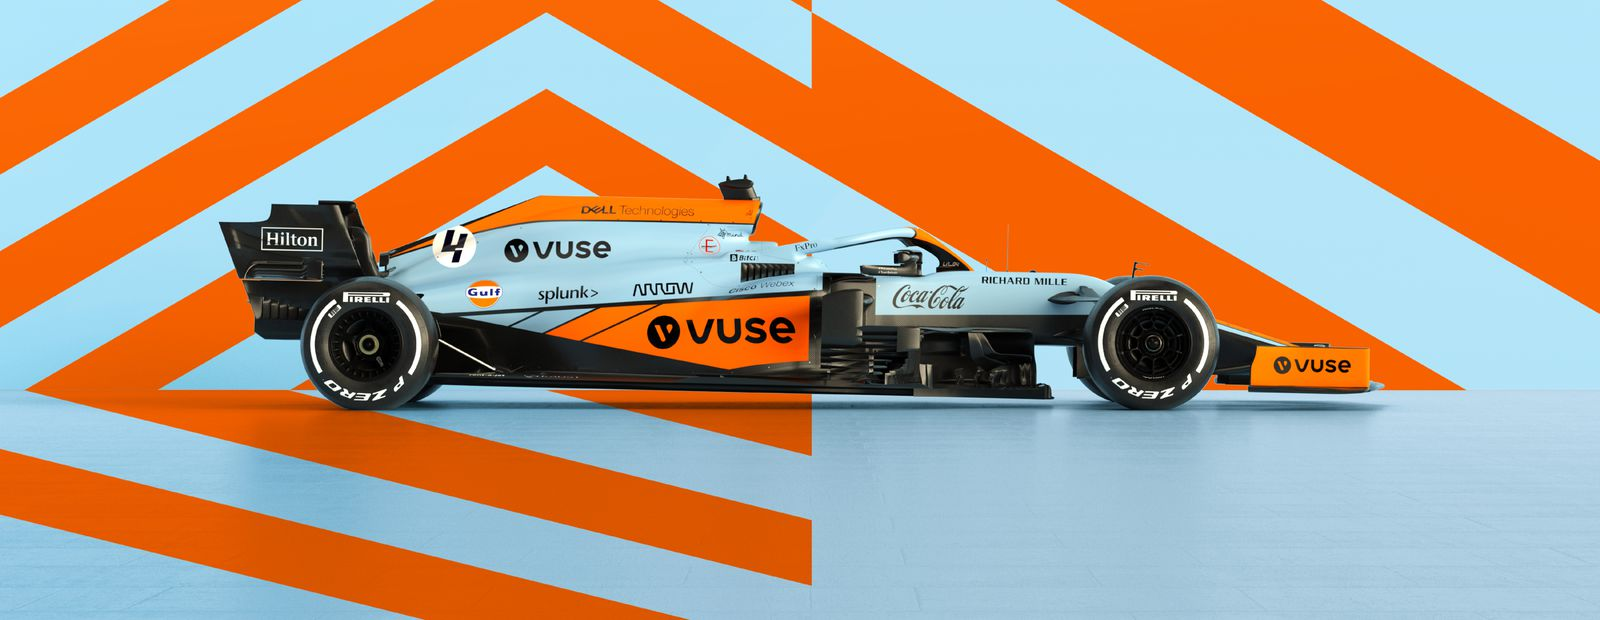 McLaren Racing and Gulf Oil International unveil limited edition Monaco Grand Prix livery